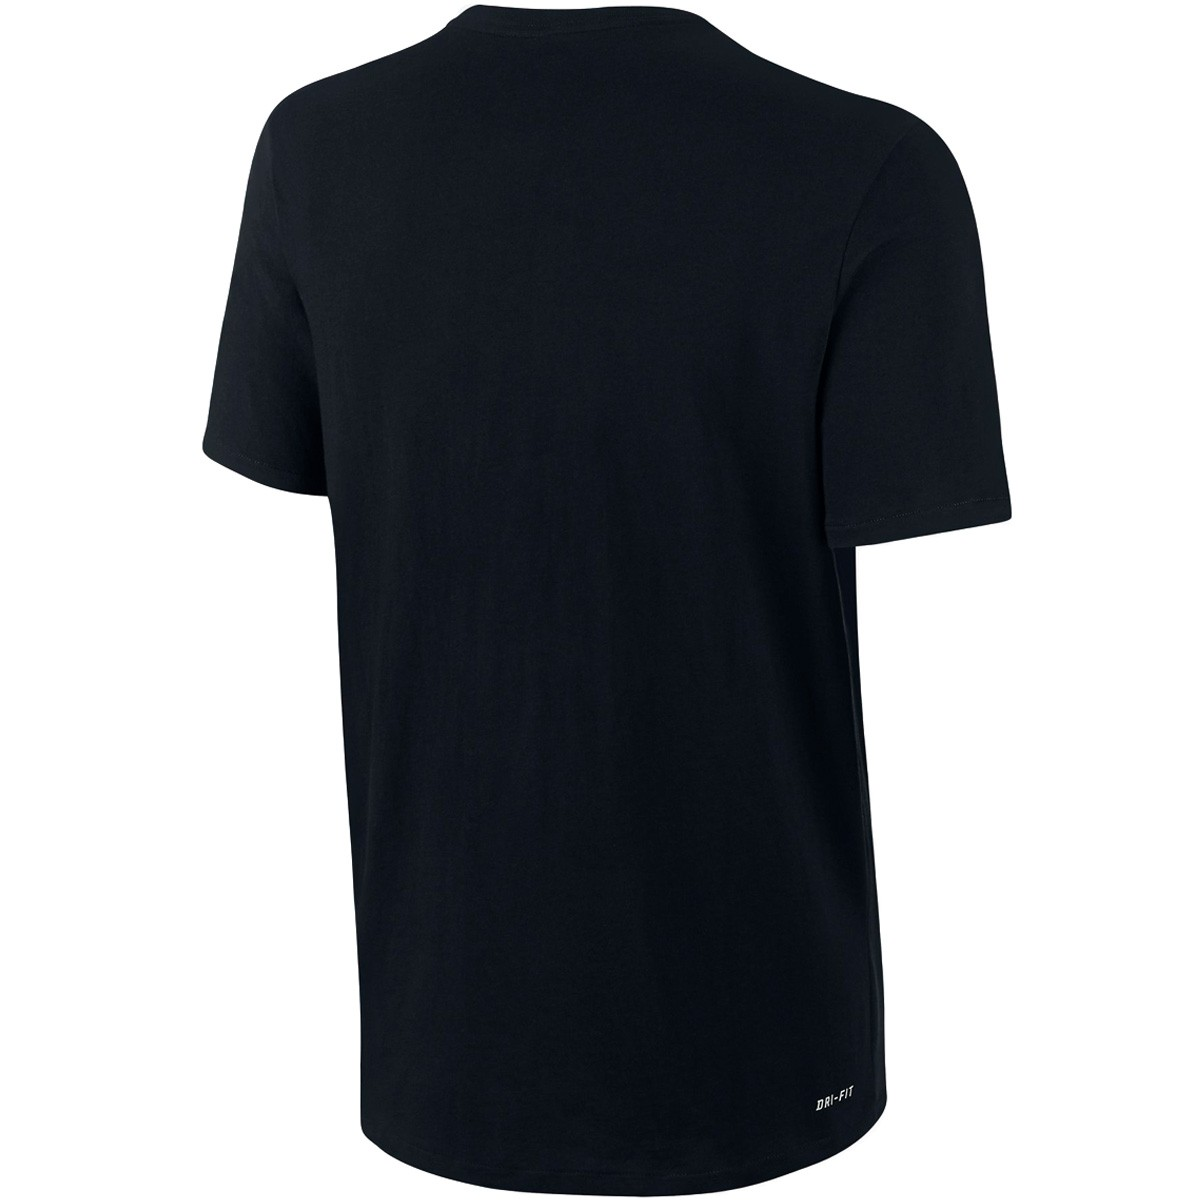 Black t shirt v shape - Nike Sb Dri Fit Solid V Neck T Shirt Black Black